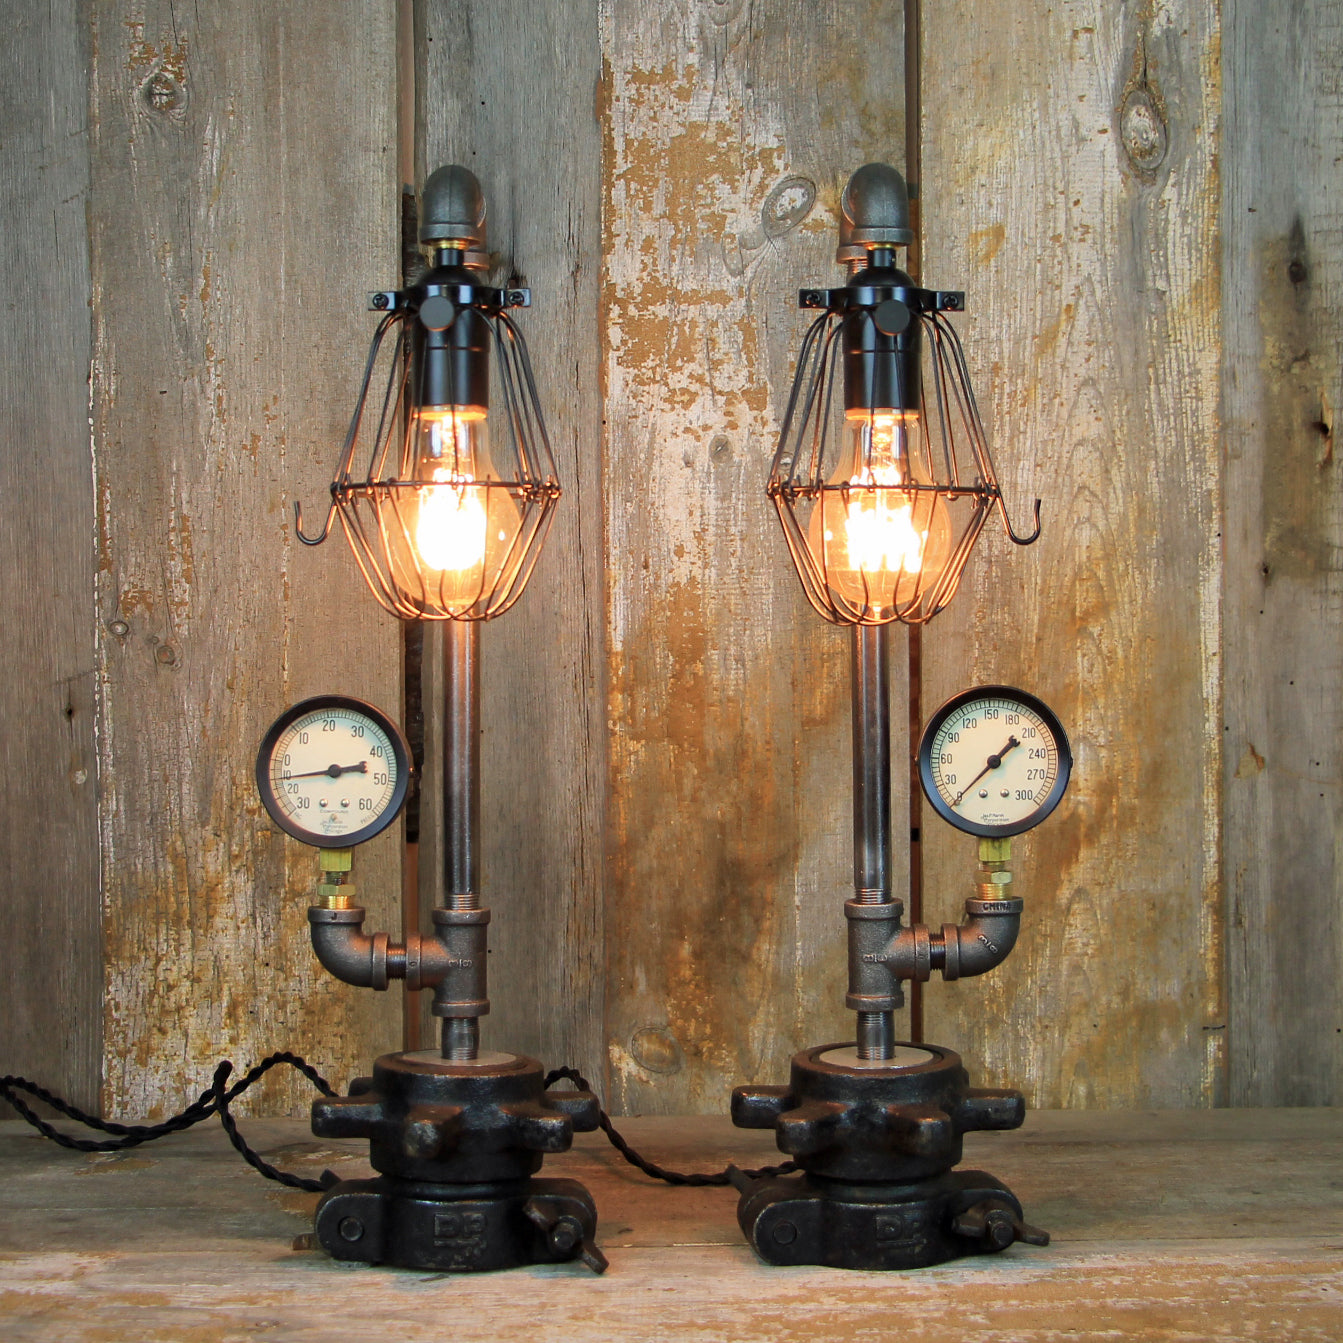 ... Steampunk Table Lamps With Edison Bulbs   Industrial Table Lamp Pair  #146   The Lighting ...